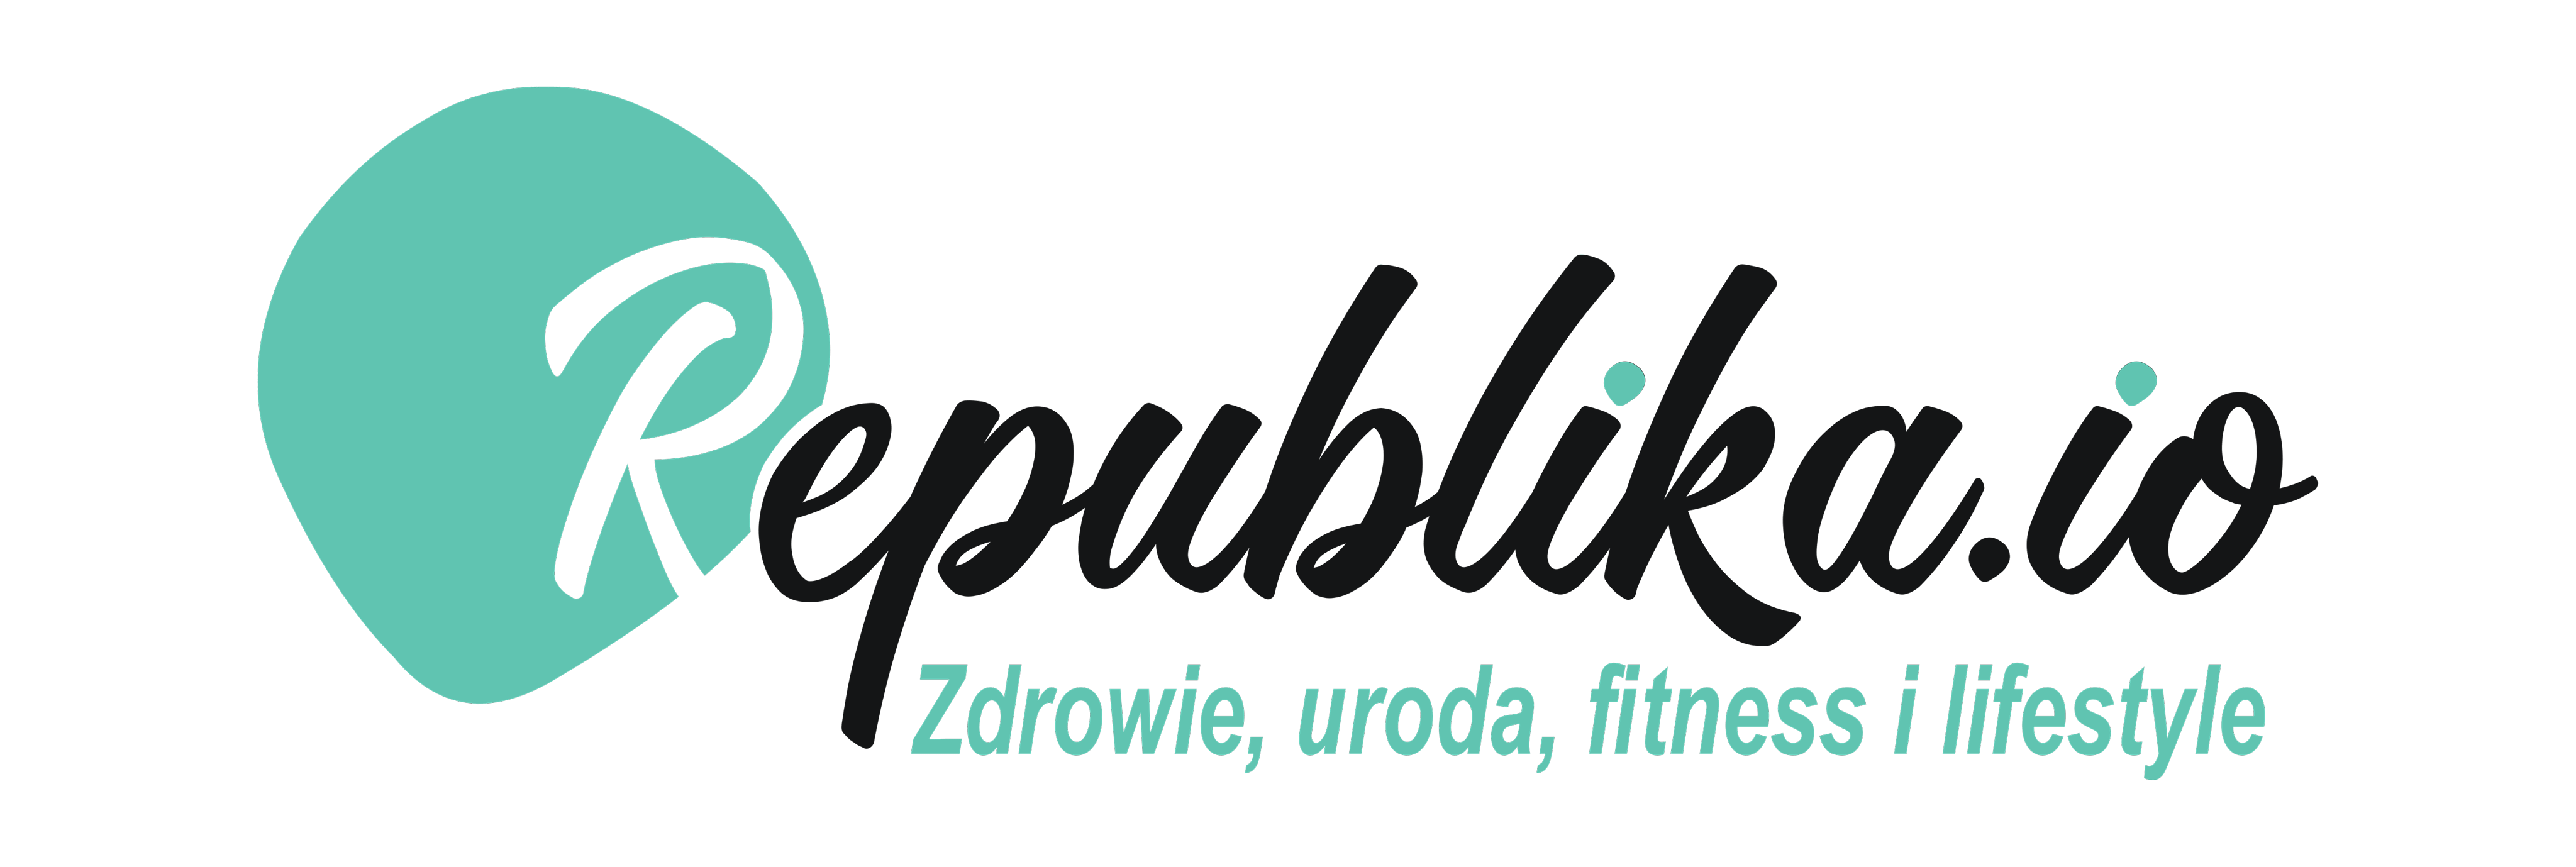 Republika.io